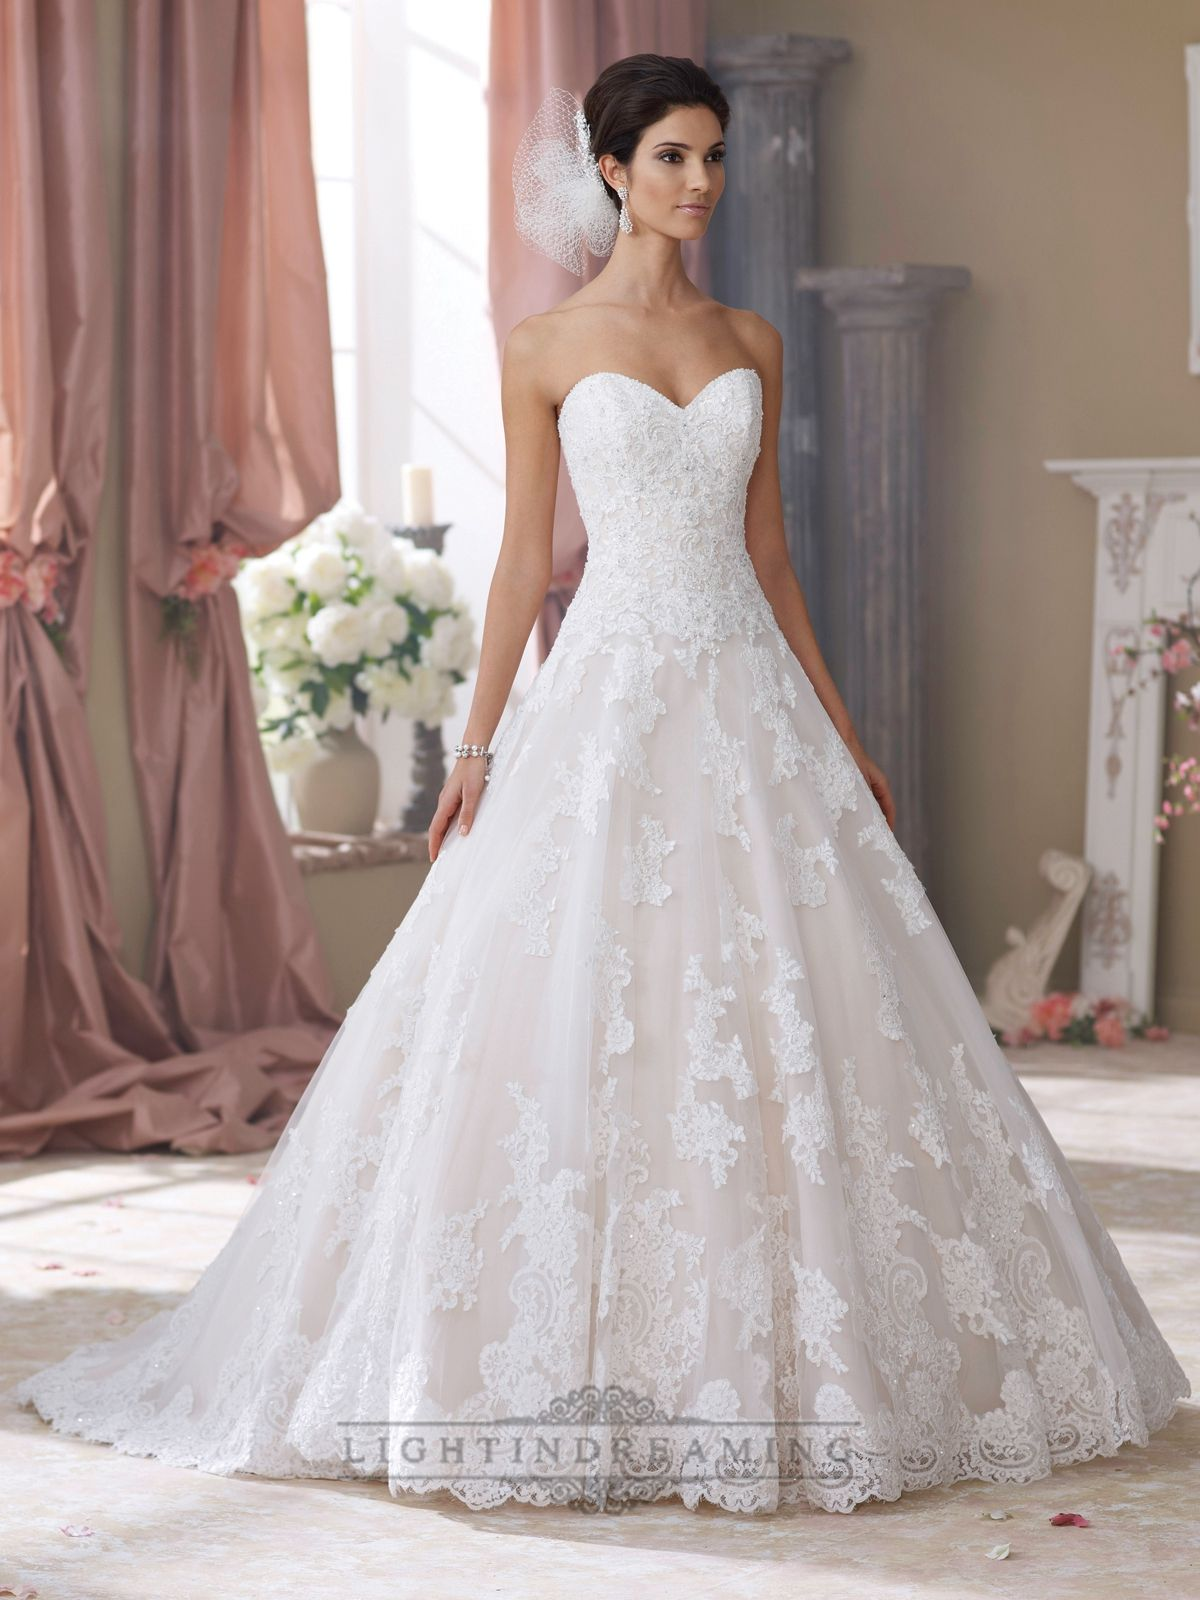 137 Best Ballgown Wedding Dresses Images On Pinterest Frocks Short Gowns And Homecoming Straps